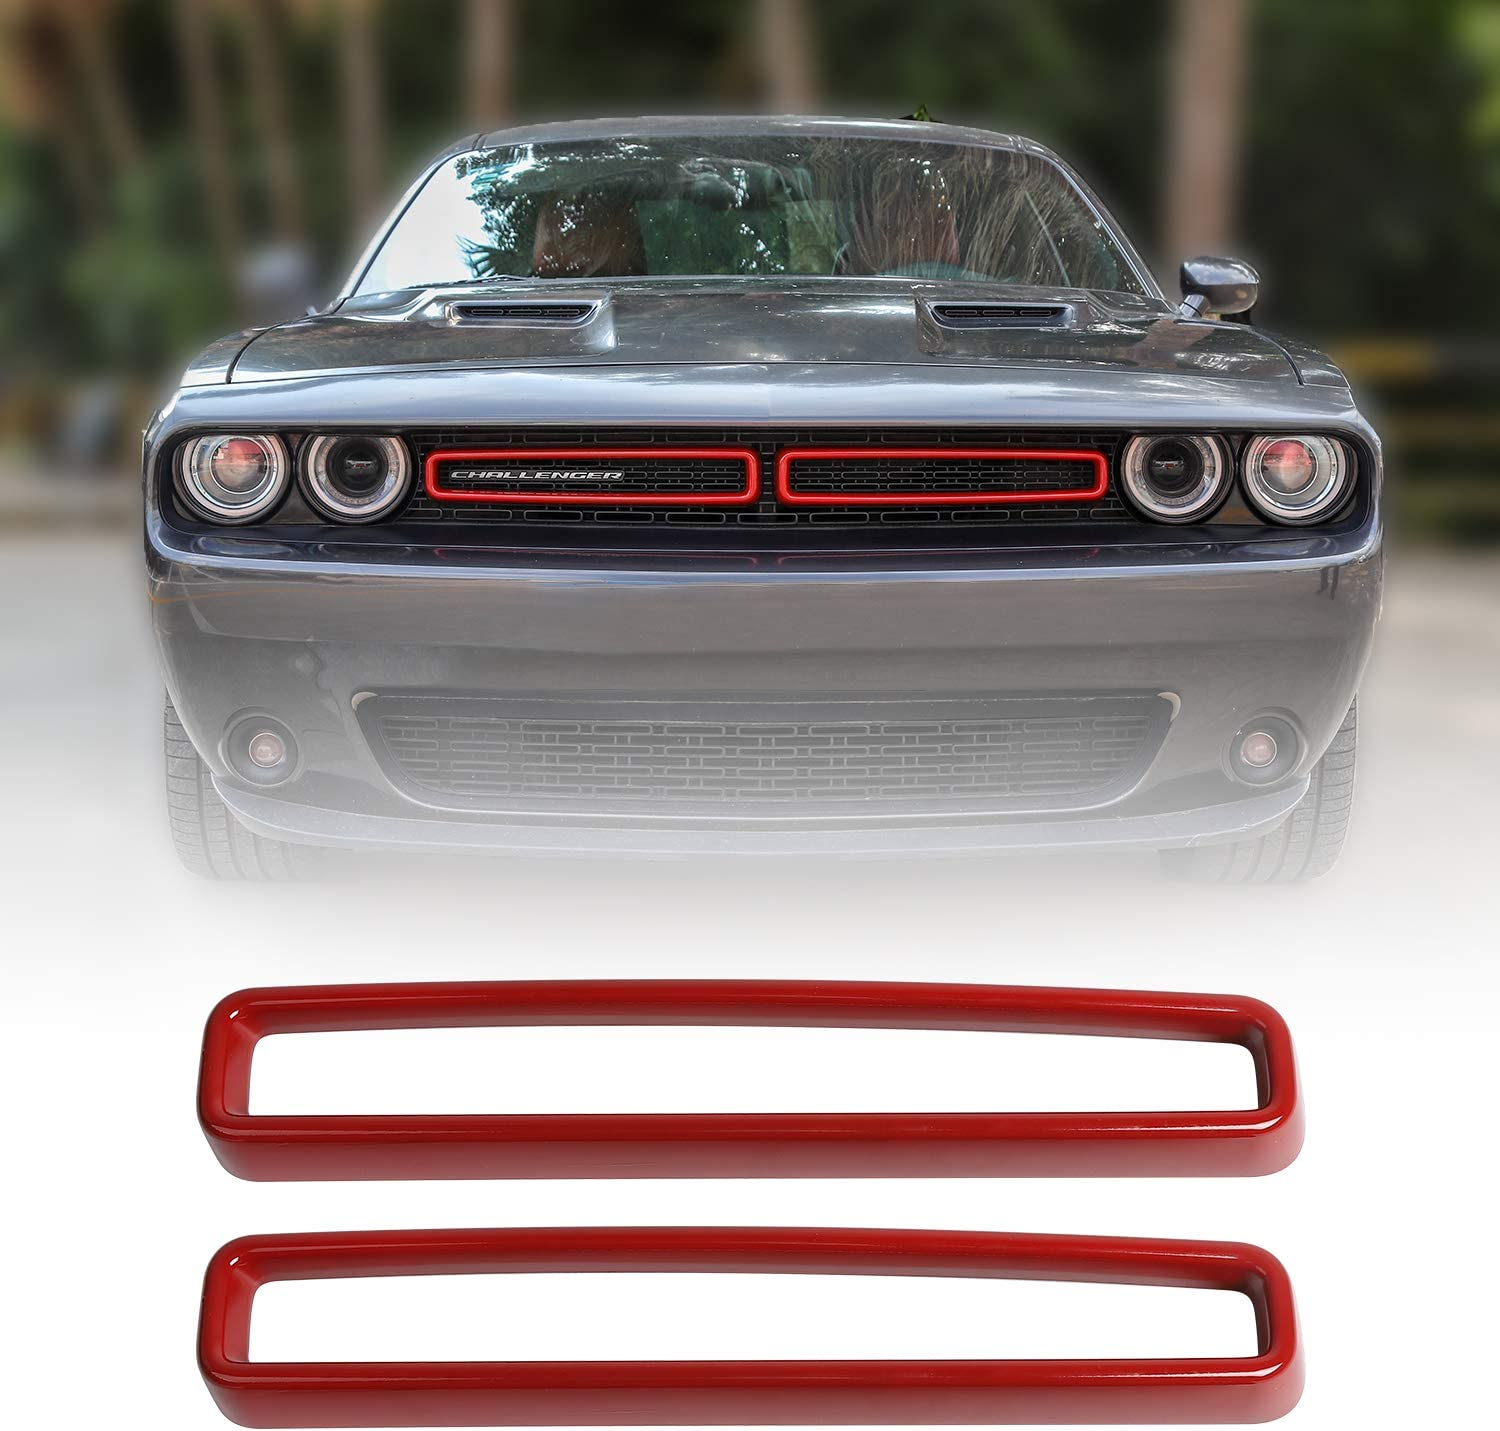 amazon com jecar grille inserts abs grill cover trim kit exterior accessories for 2015 2019 dodge challenger red automotive jecar grille inserts abs grill cover trim kit exterior accessories for 2015 2019 dodge challenger red